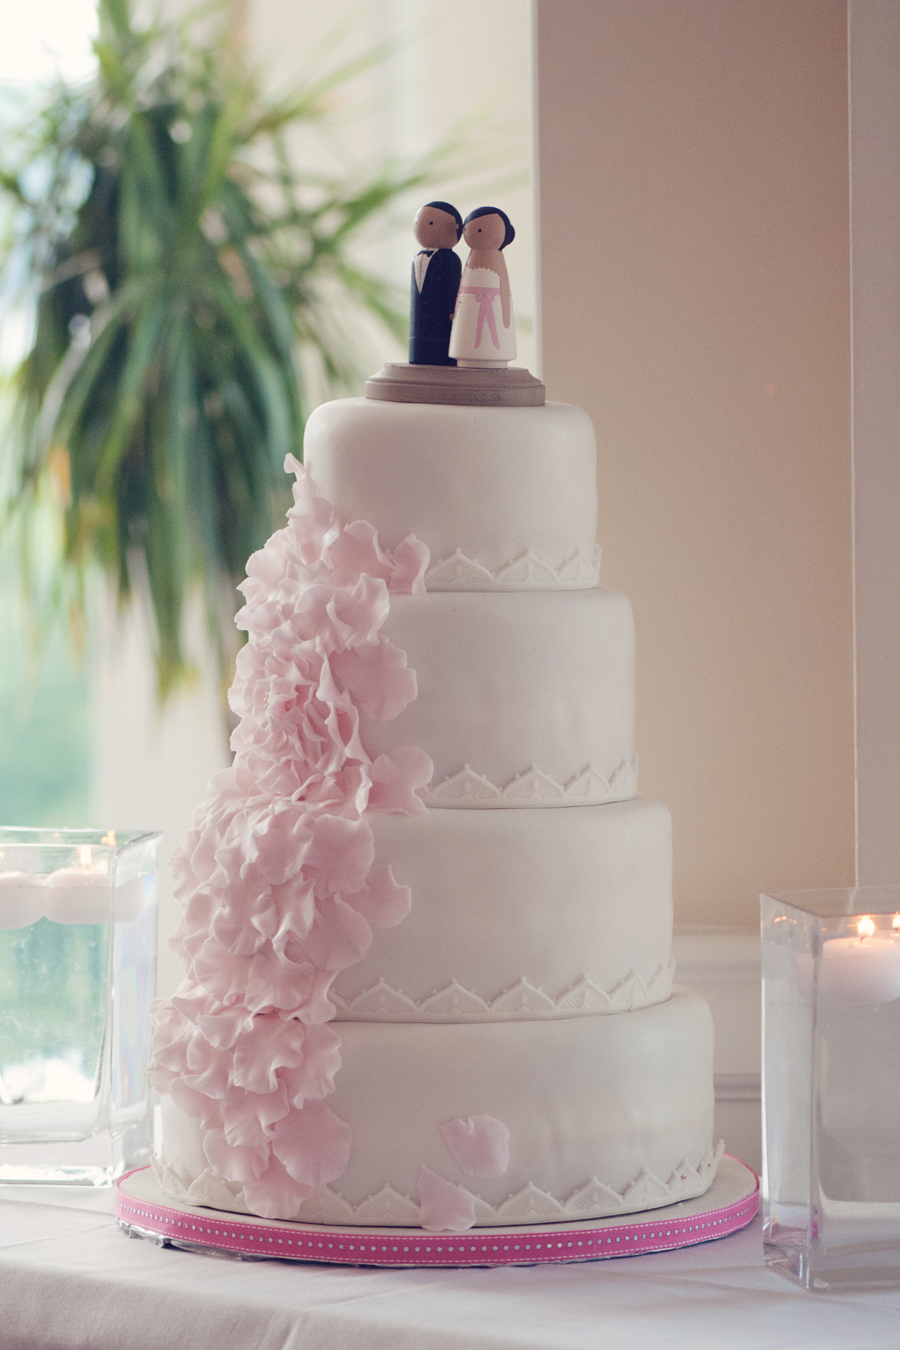 Pink And White Fondant Wedding Cake Elizabeth Anne